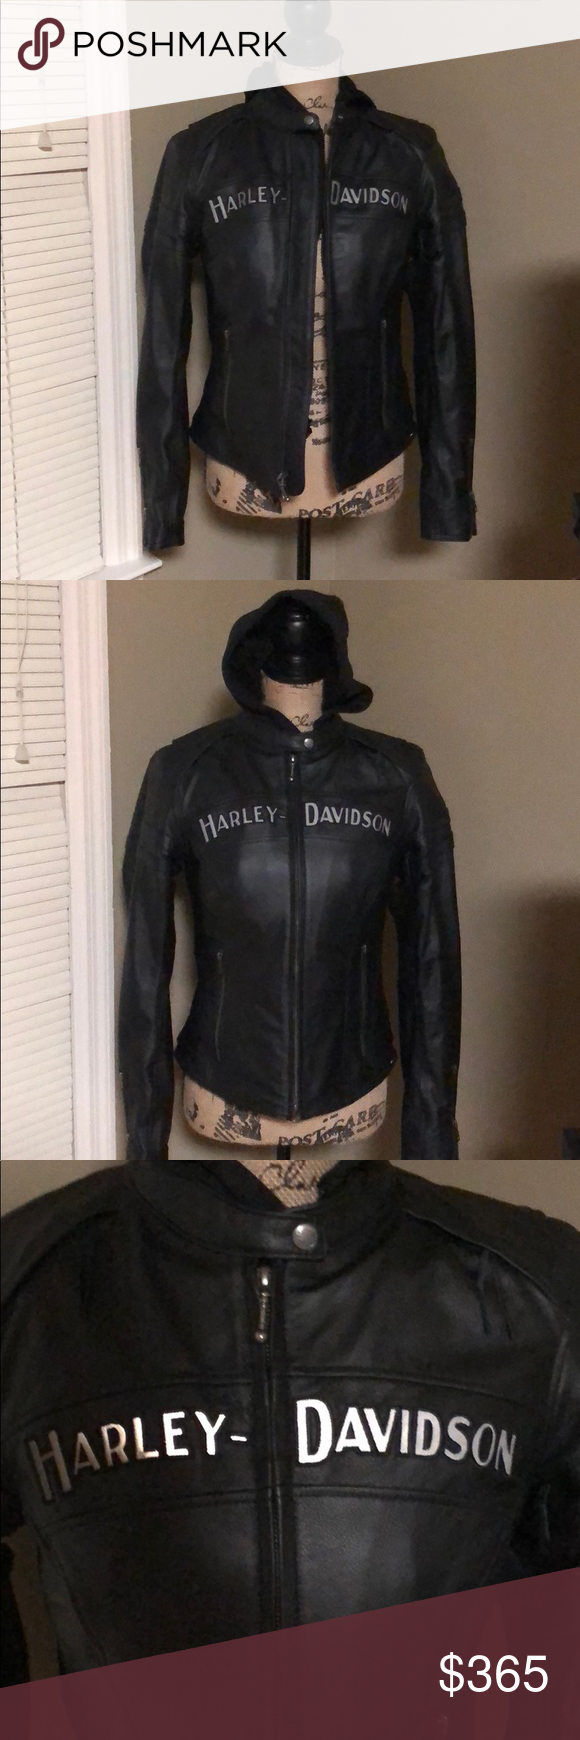 Harley Davidson 3in1 Enthusiast leather jacket Leather